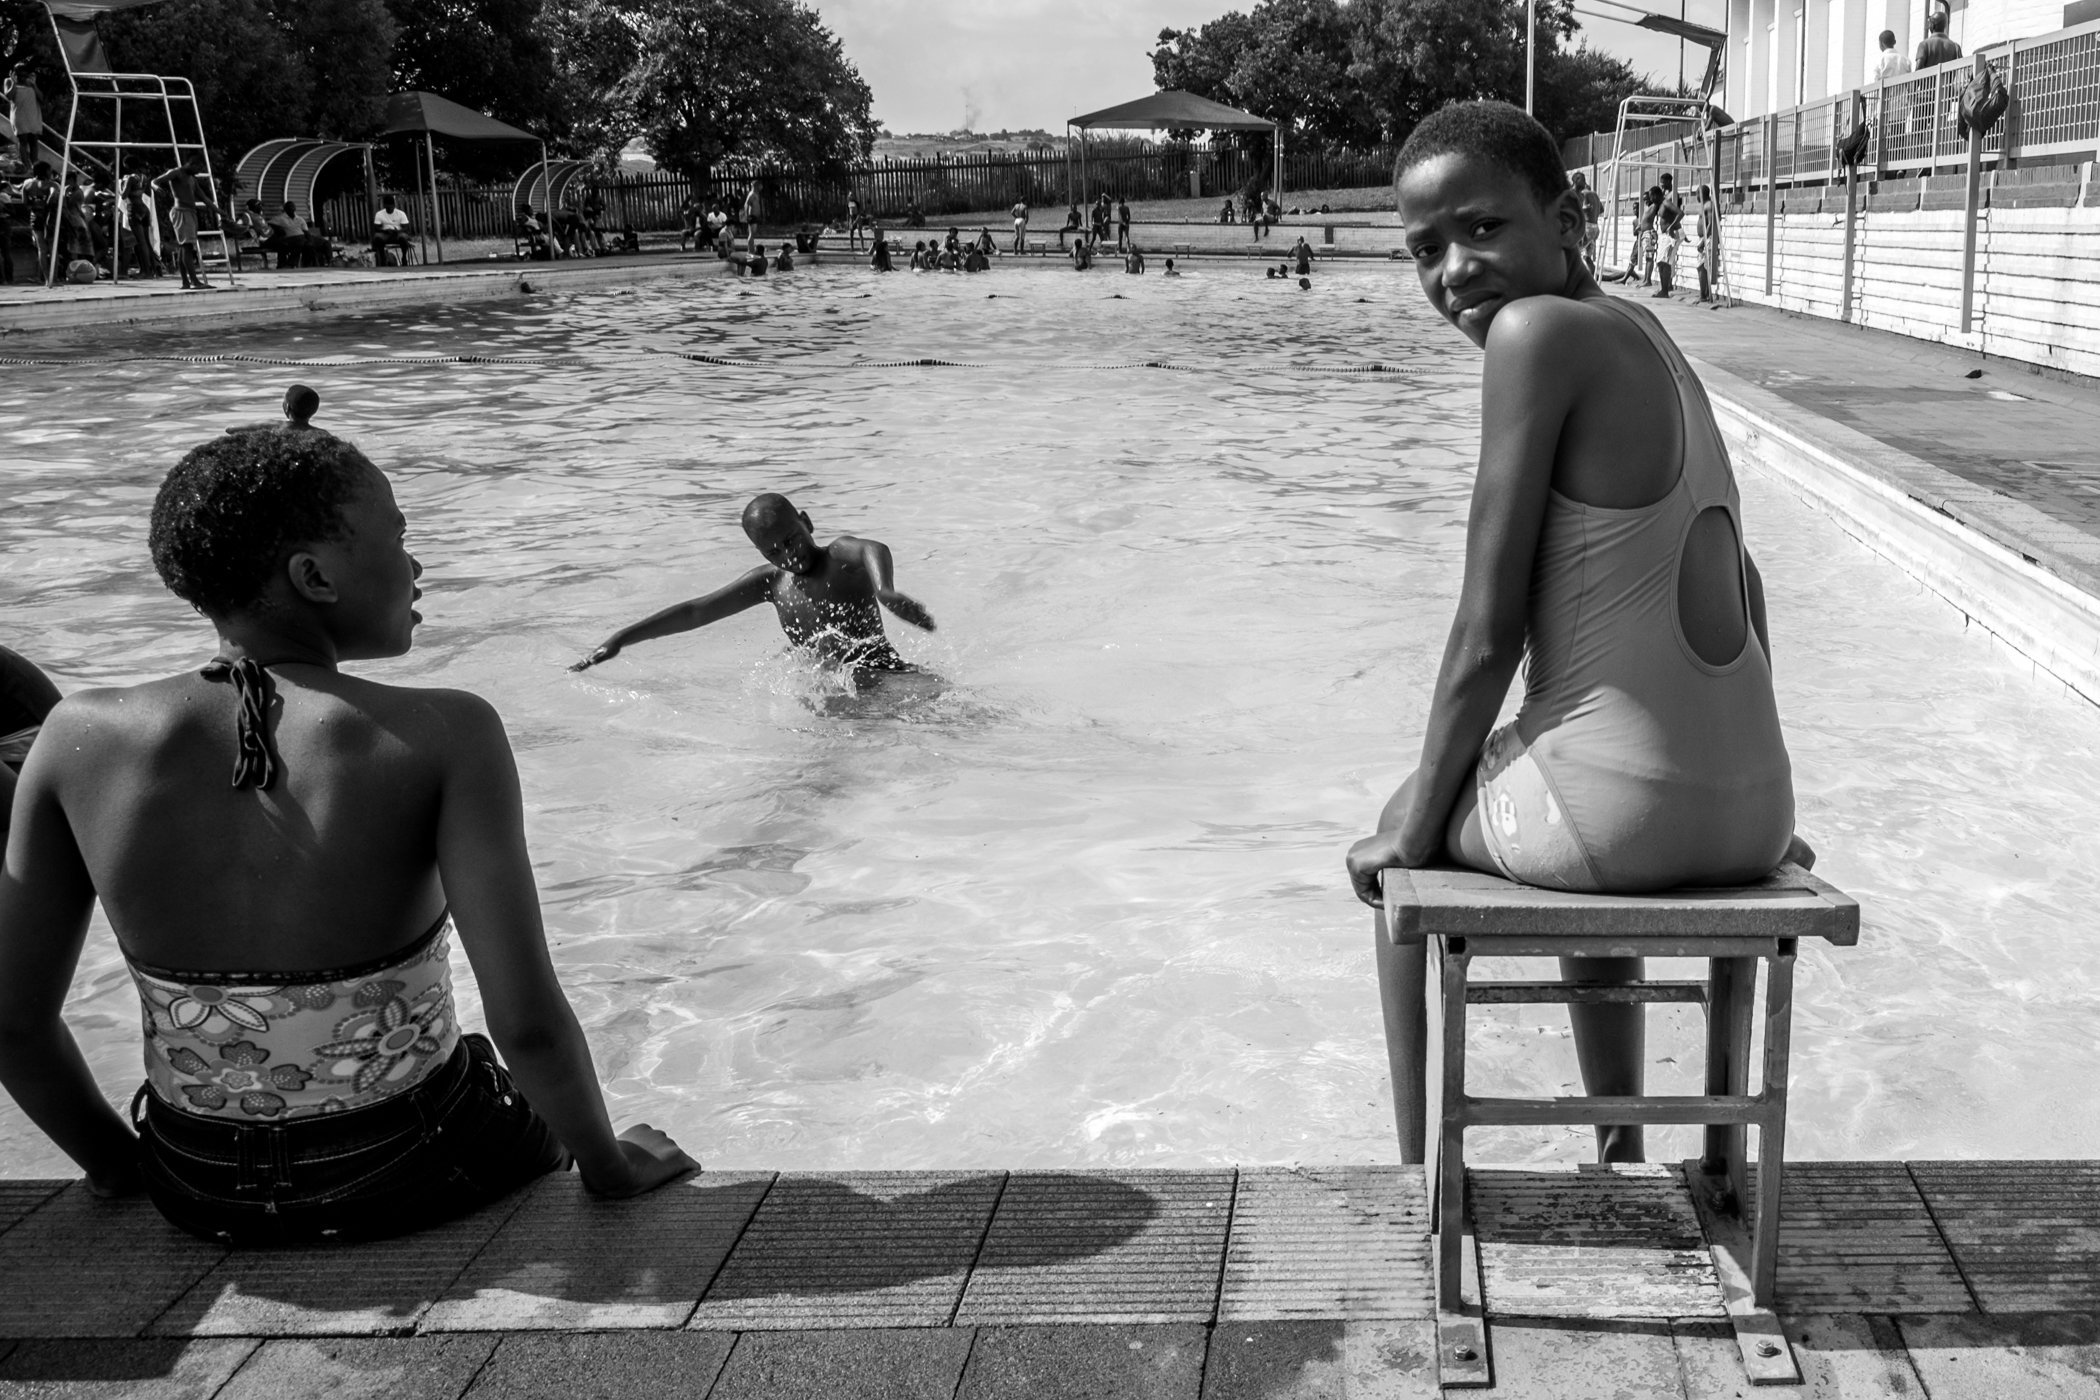 Africans_Can_Swim_Series_Series-9217.jpg